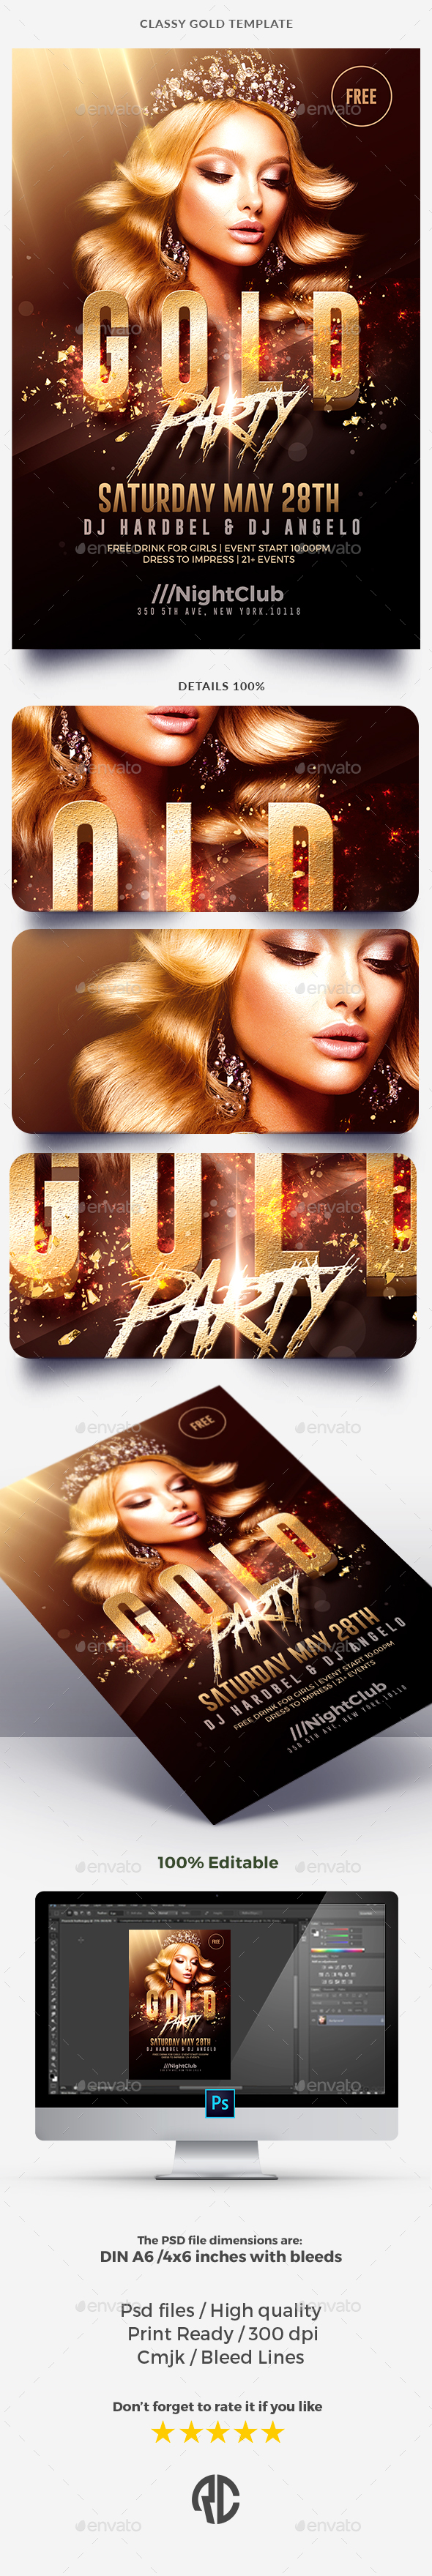 Classy Gold Party - Flyer Template - Clubs & Parties Events